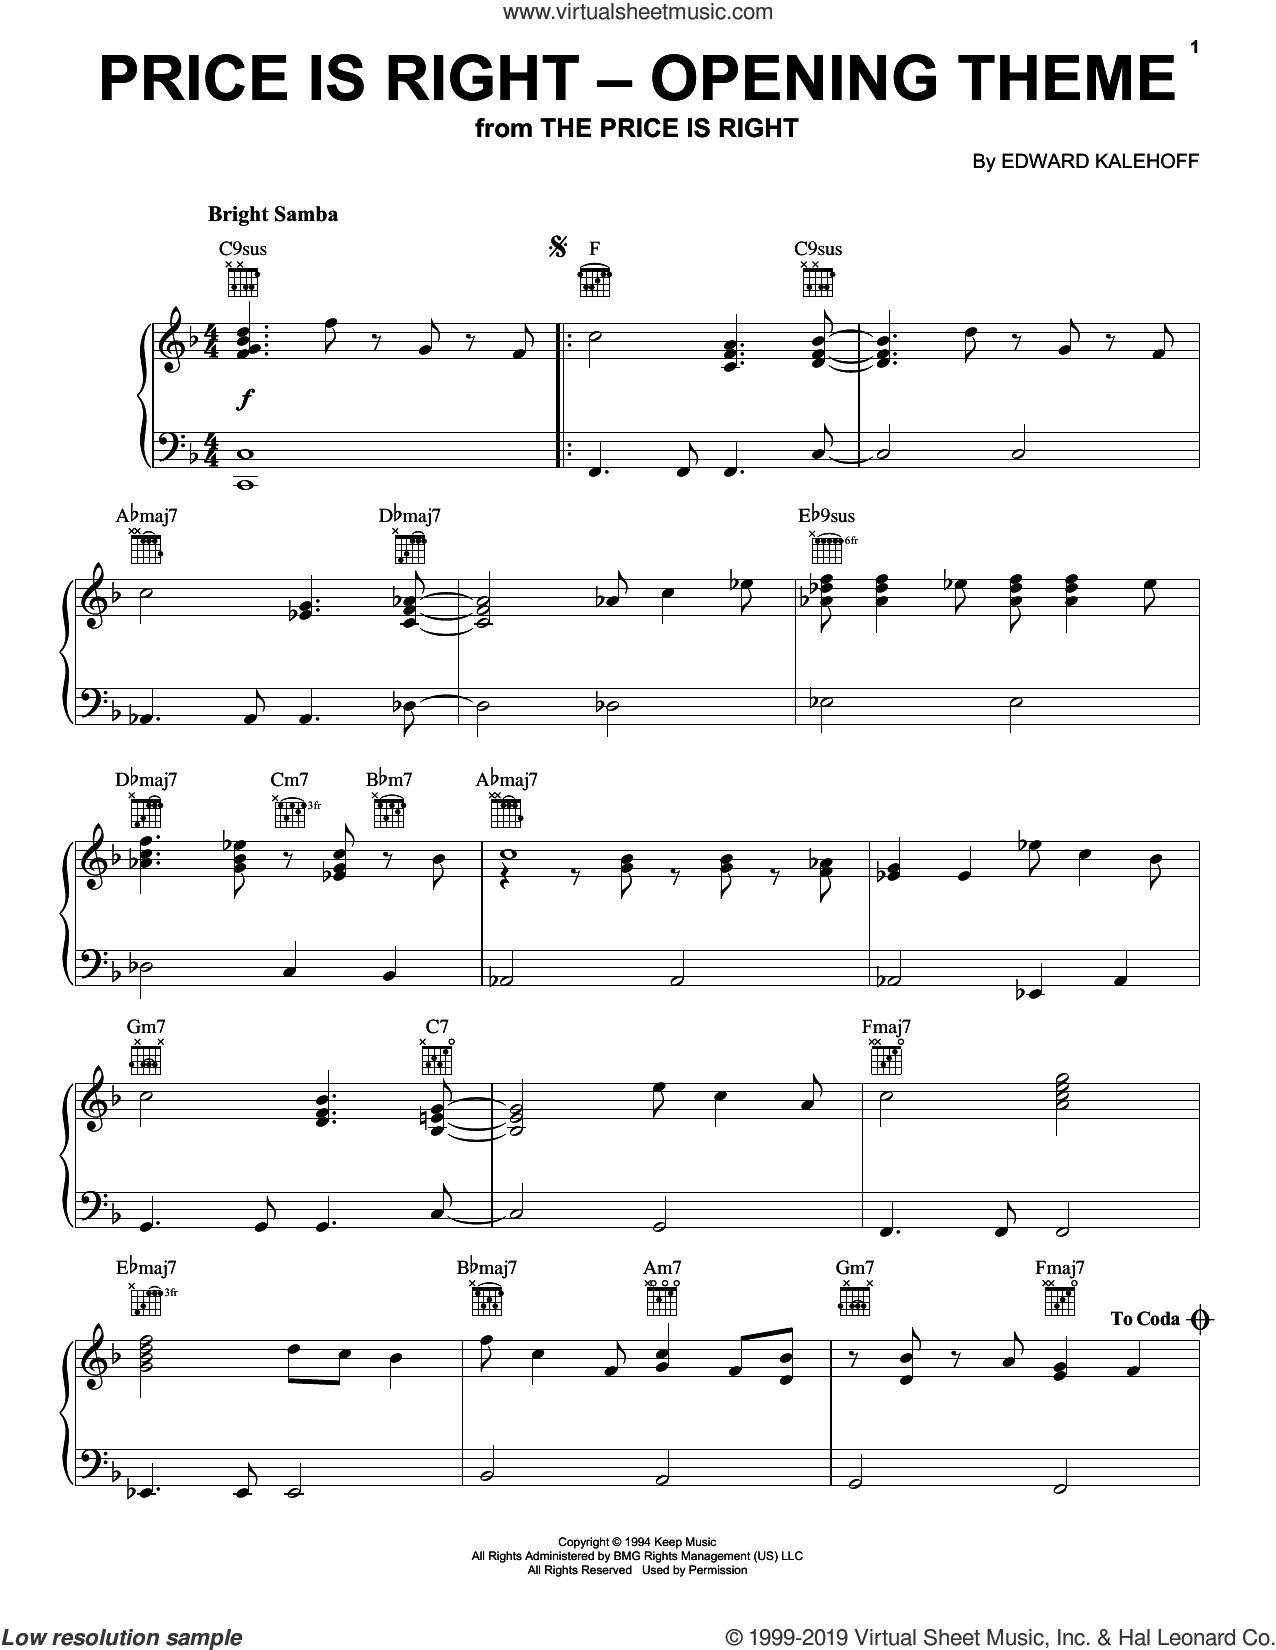 Price Is Right (Opening Theme) sheet music for piano solo by Edward Kalehoff, intermediate skill level